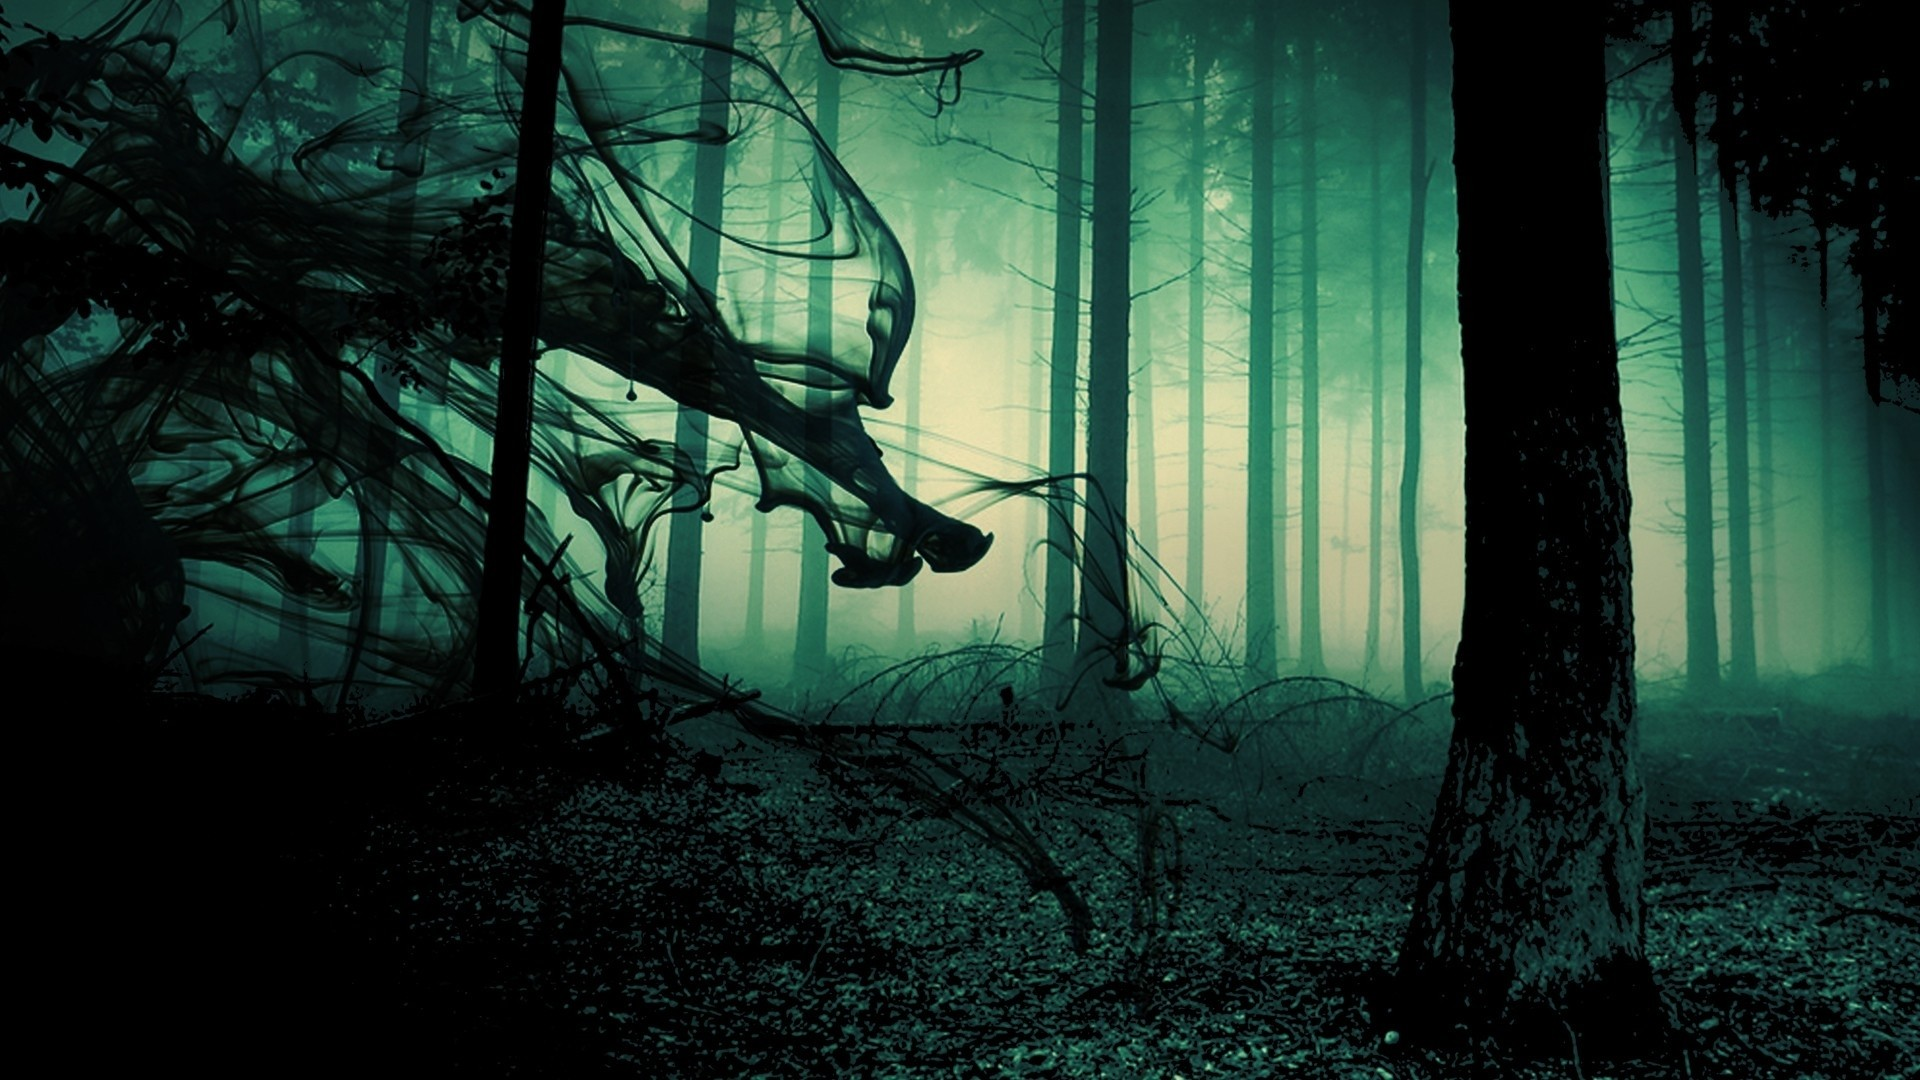 1920x1080 forest fog mood sunlight moonlight light wallpaper |  | 27846 .